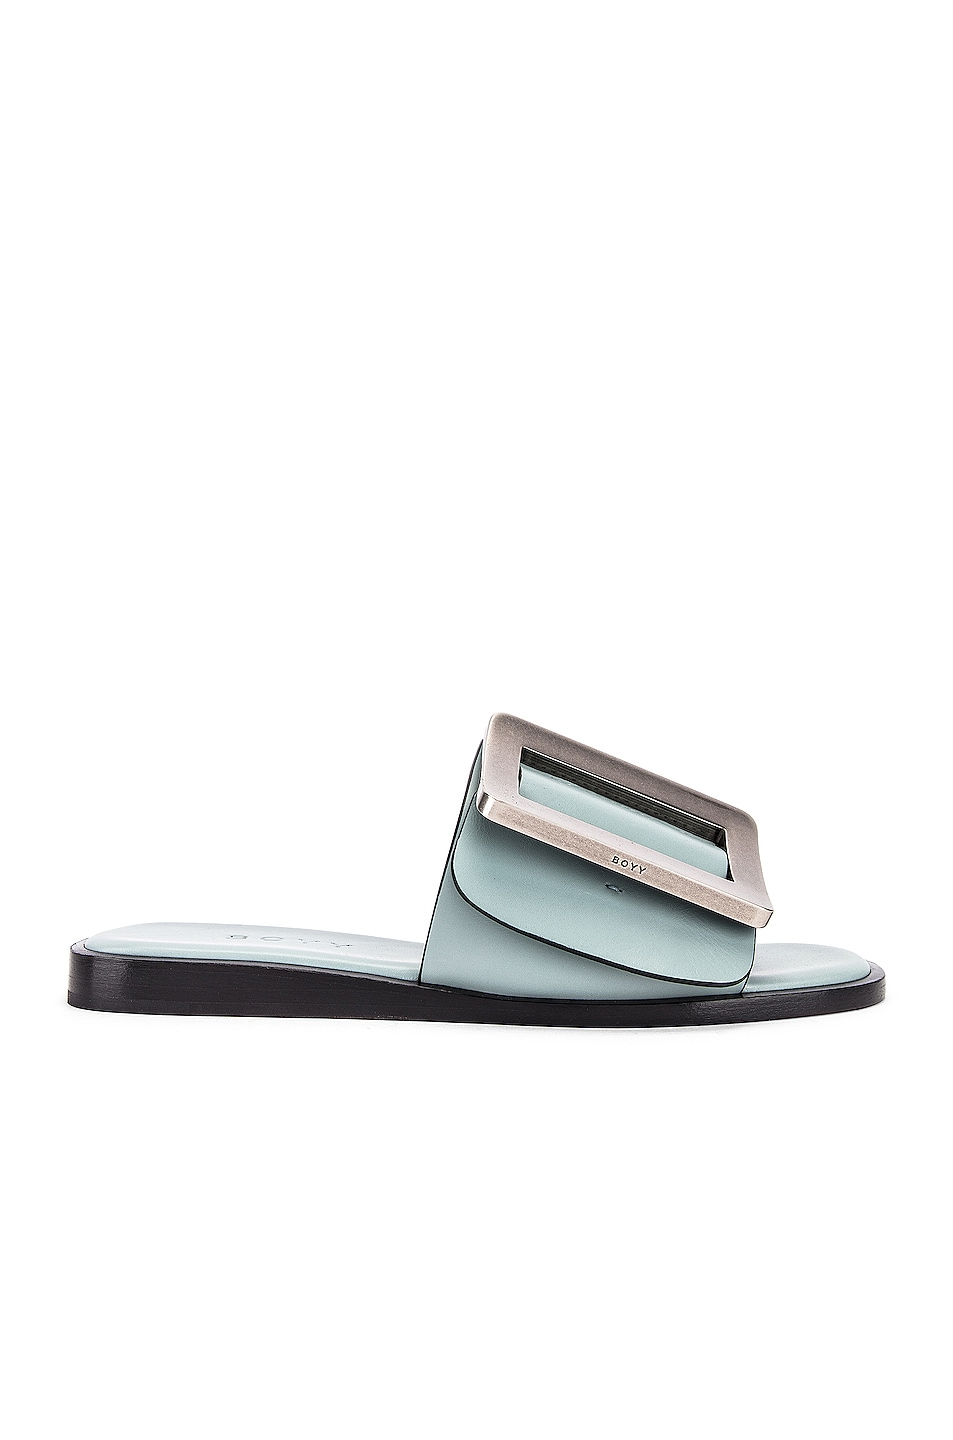 Image 1 of Boyy Sandal in Seafoam